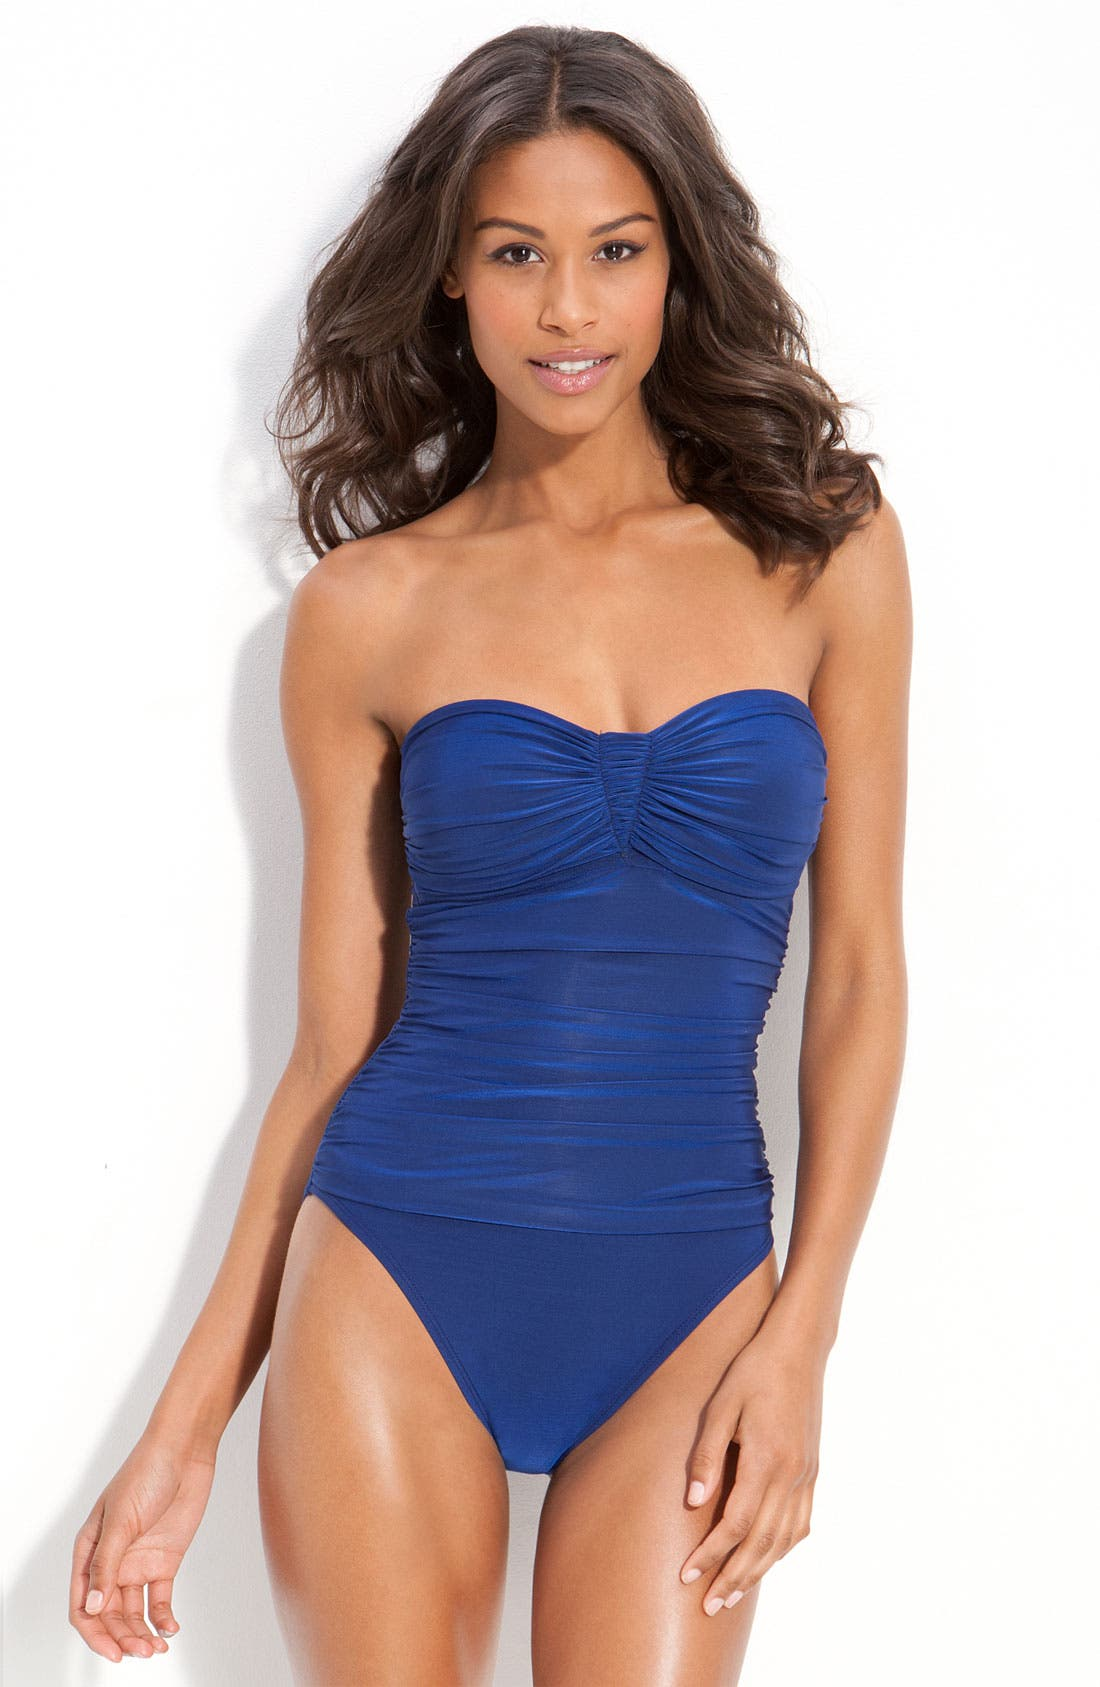 Main Image - La Blanca 'Glimmer Girl' Shirred One Piece Bandeau Swimsuit